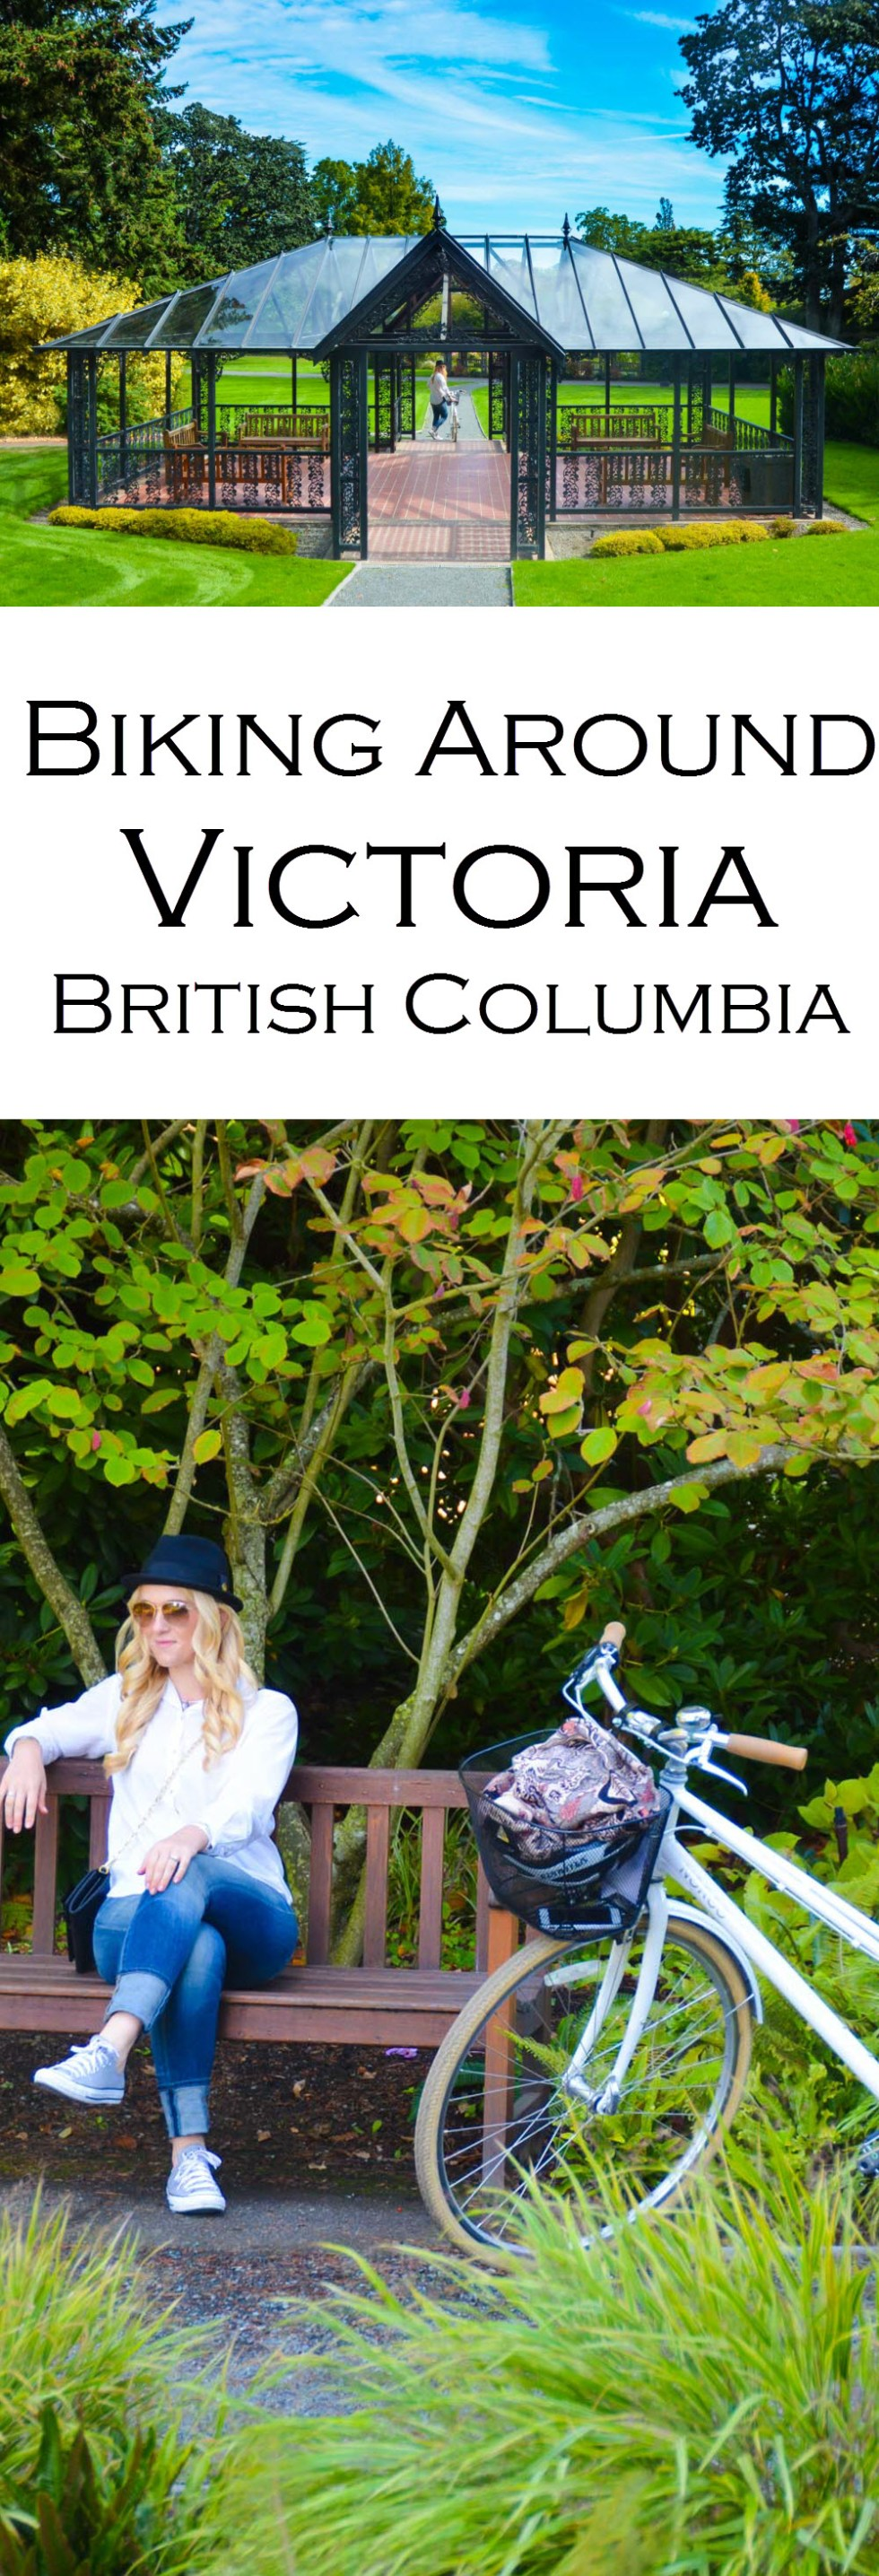 Biking Around Victoria, B.C. with stops at gardens, castles, tea, and beautiful city parks.